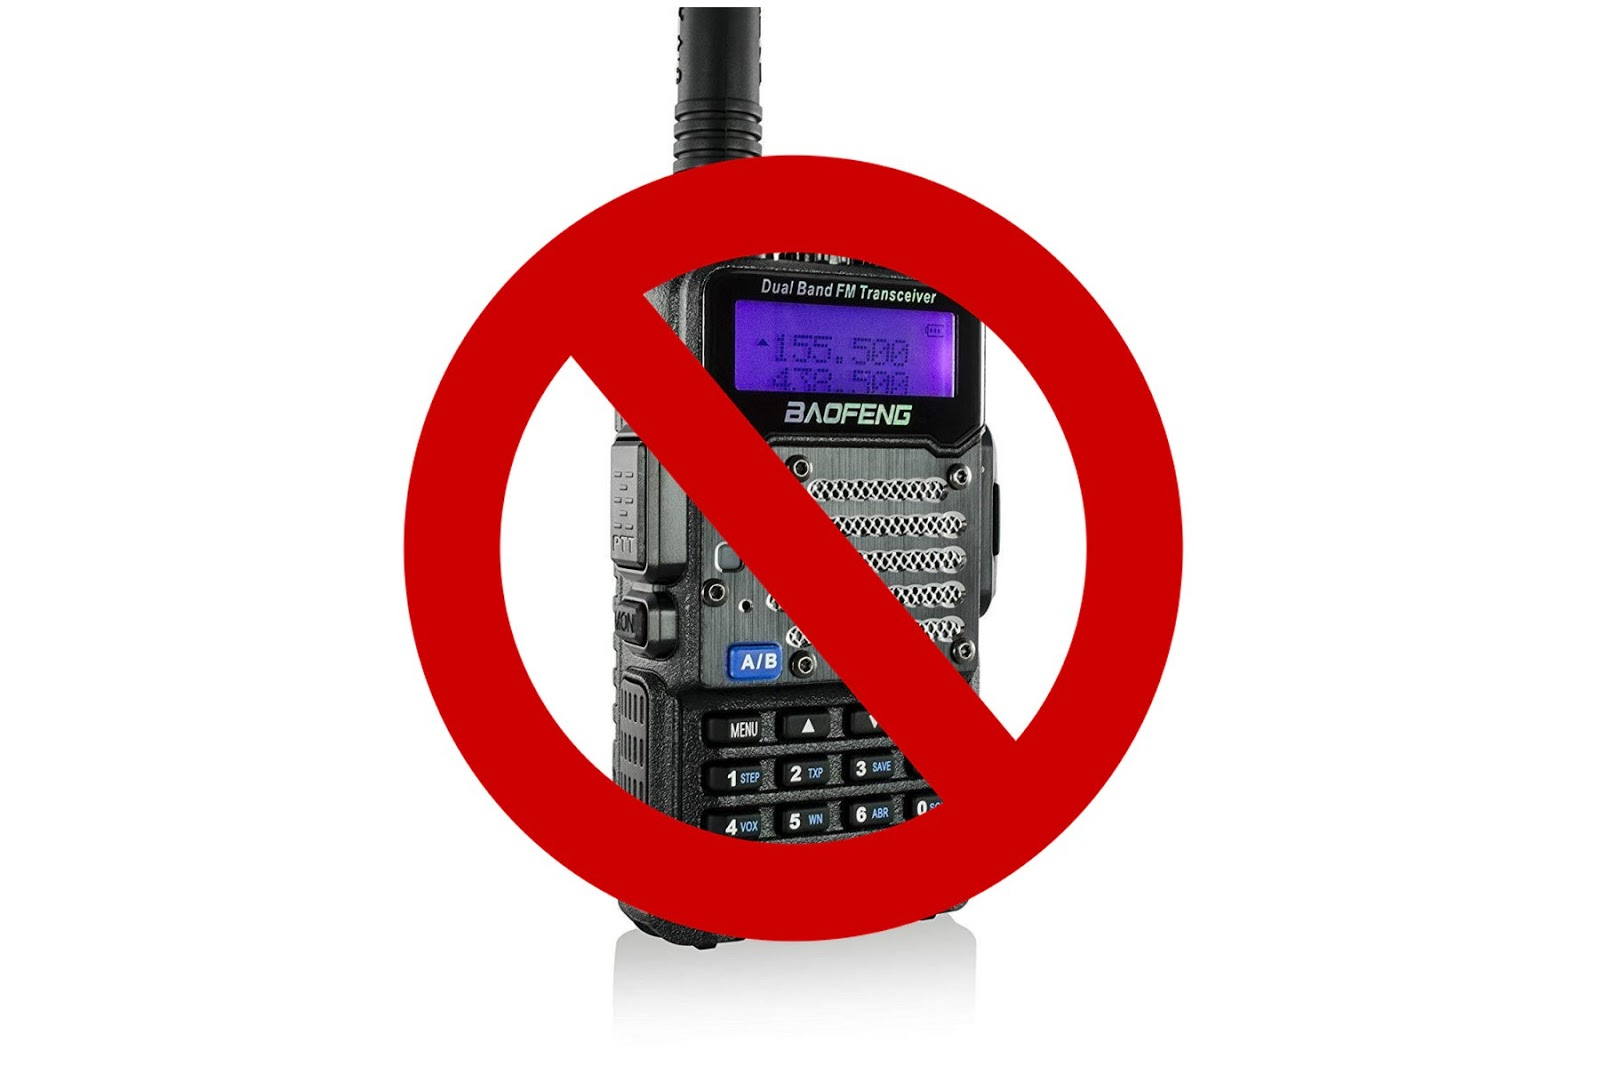 FCC Enforcement Advisory Targets Noncompliant Imported VHF/UHF Transceivers